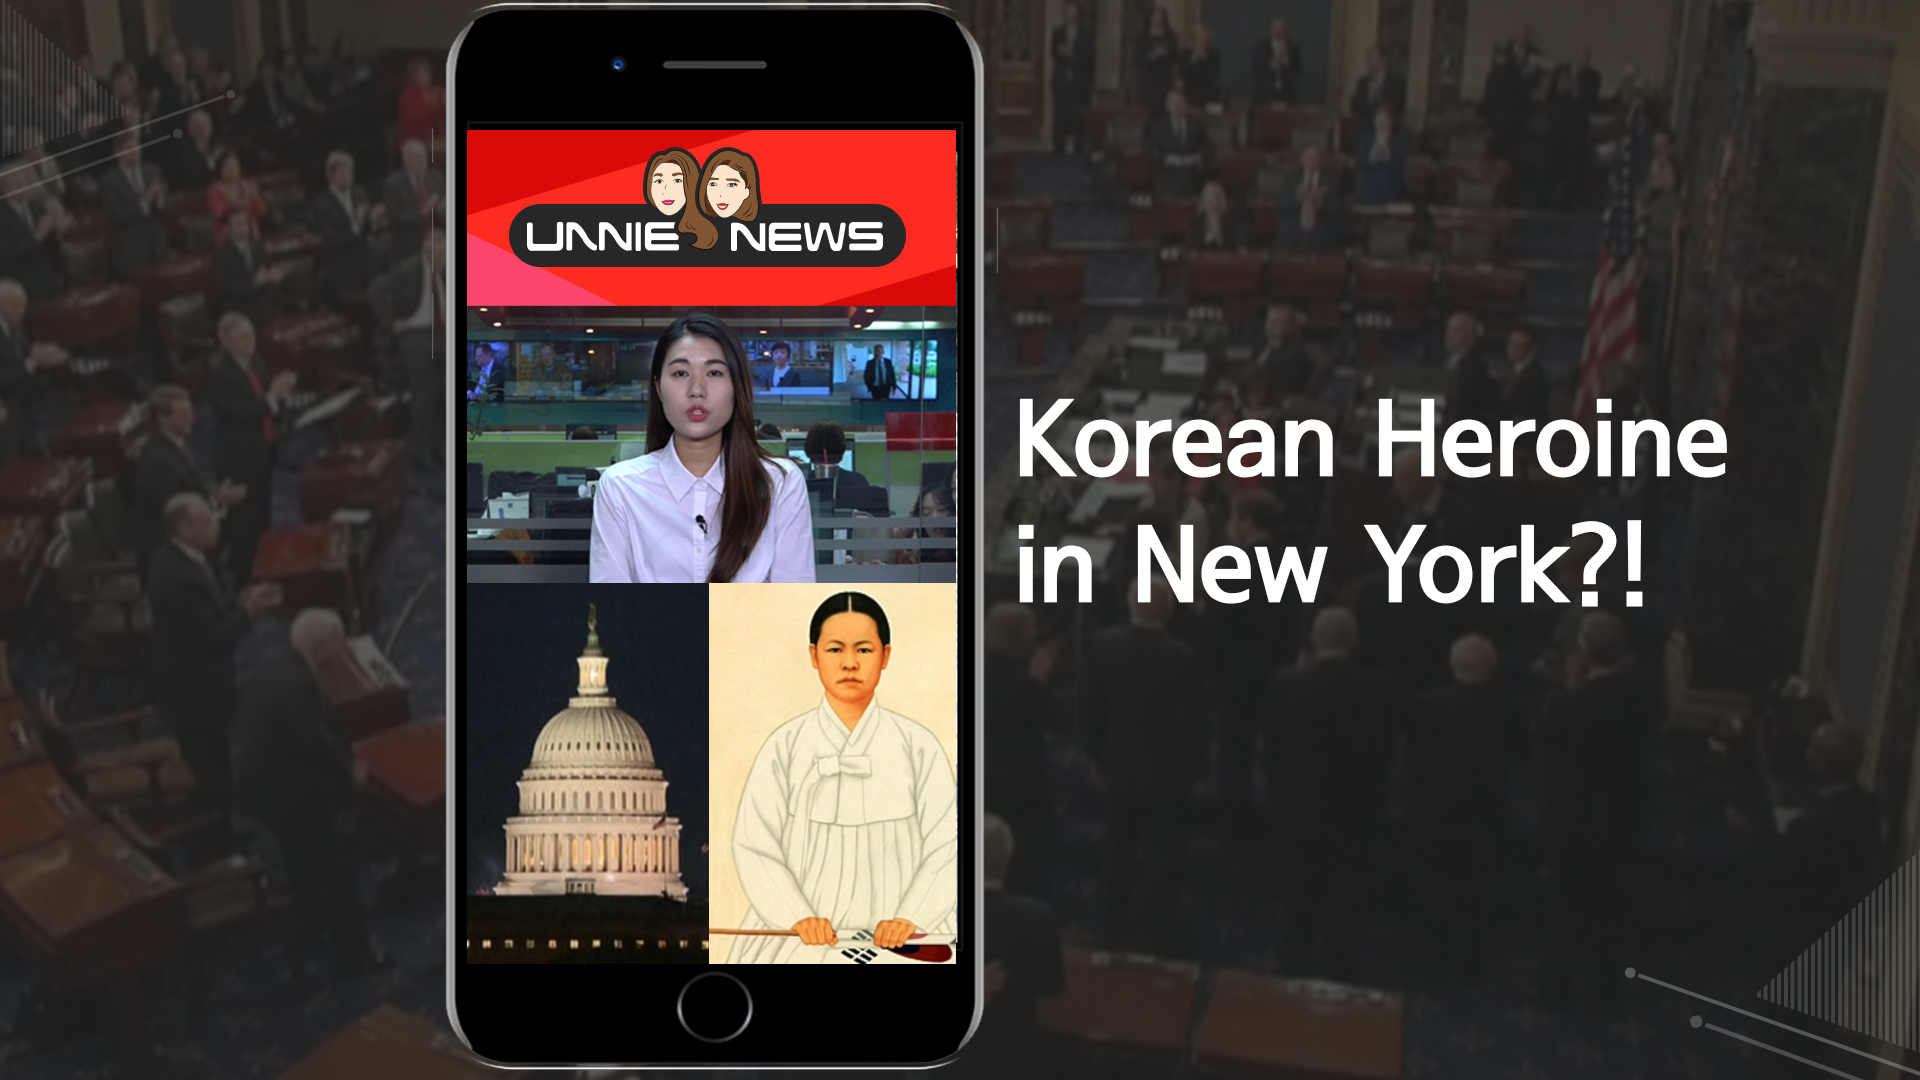 [UNNIE NEWS] Korean Heroine in New York?!